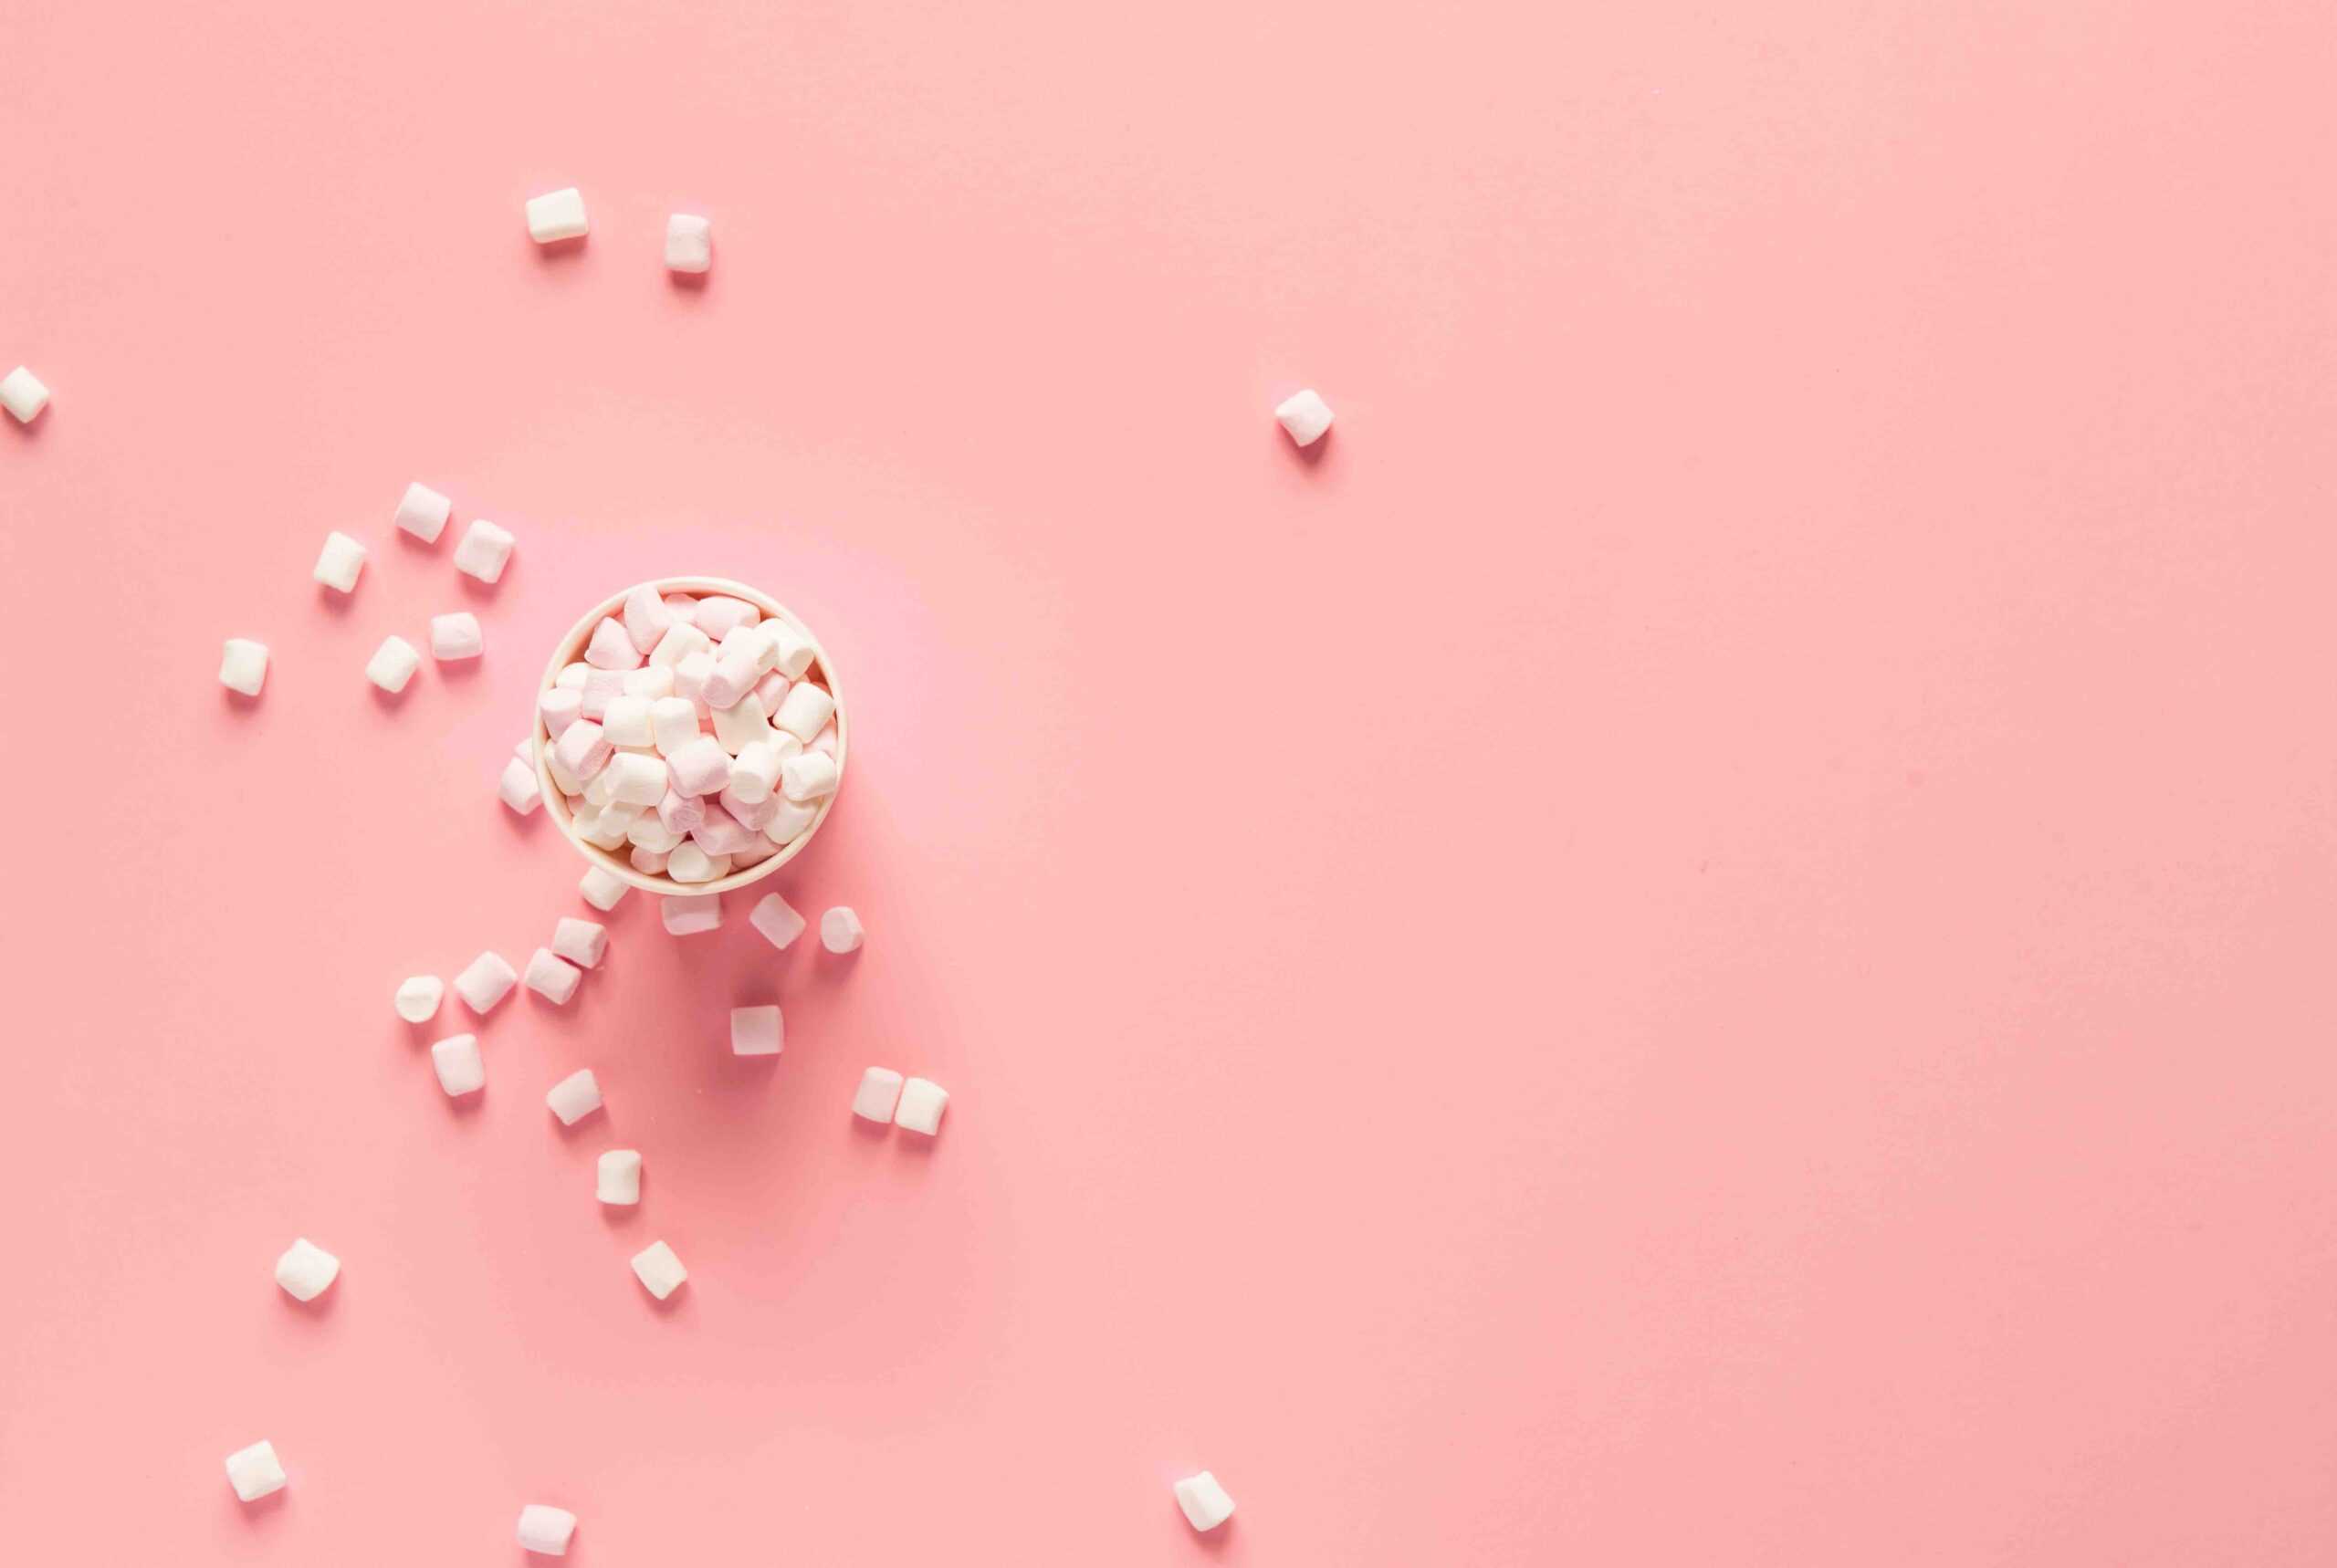 How do I get my child to eat less sugar